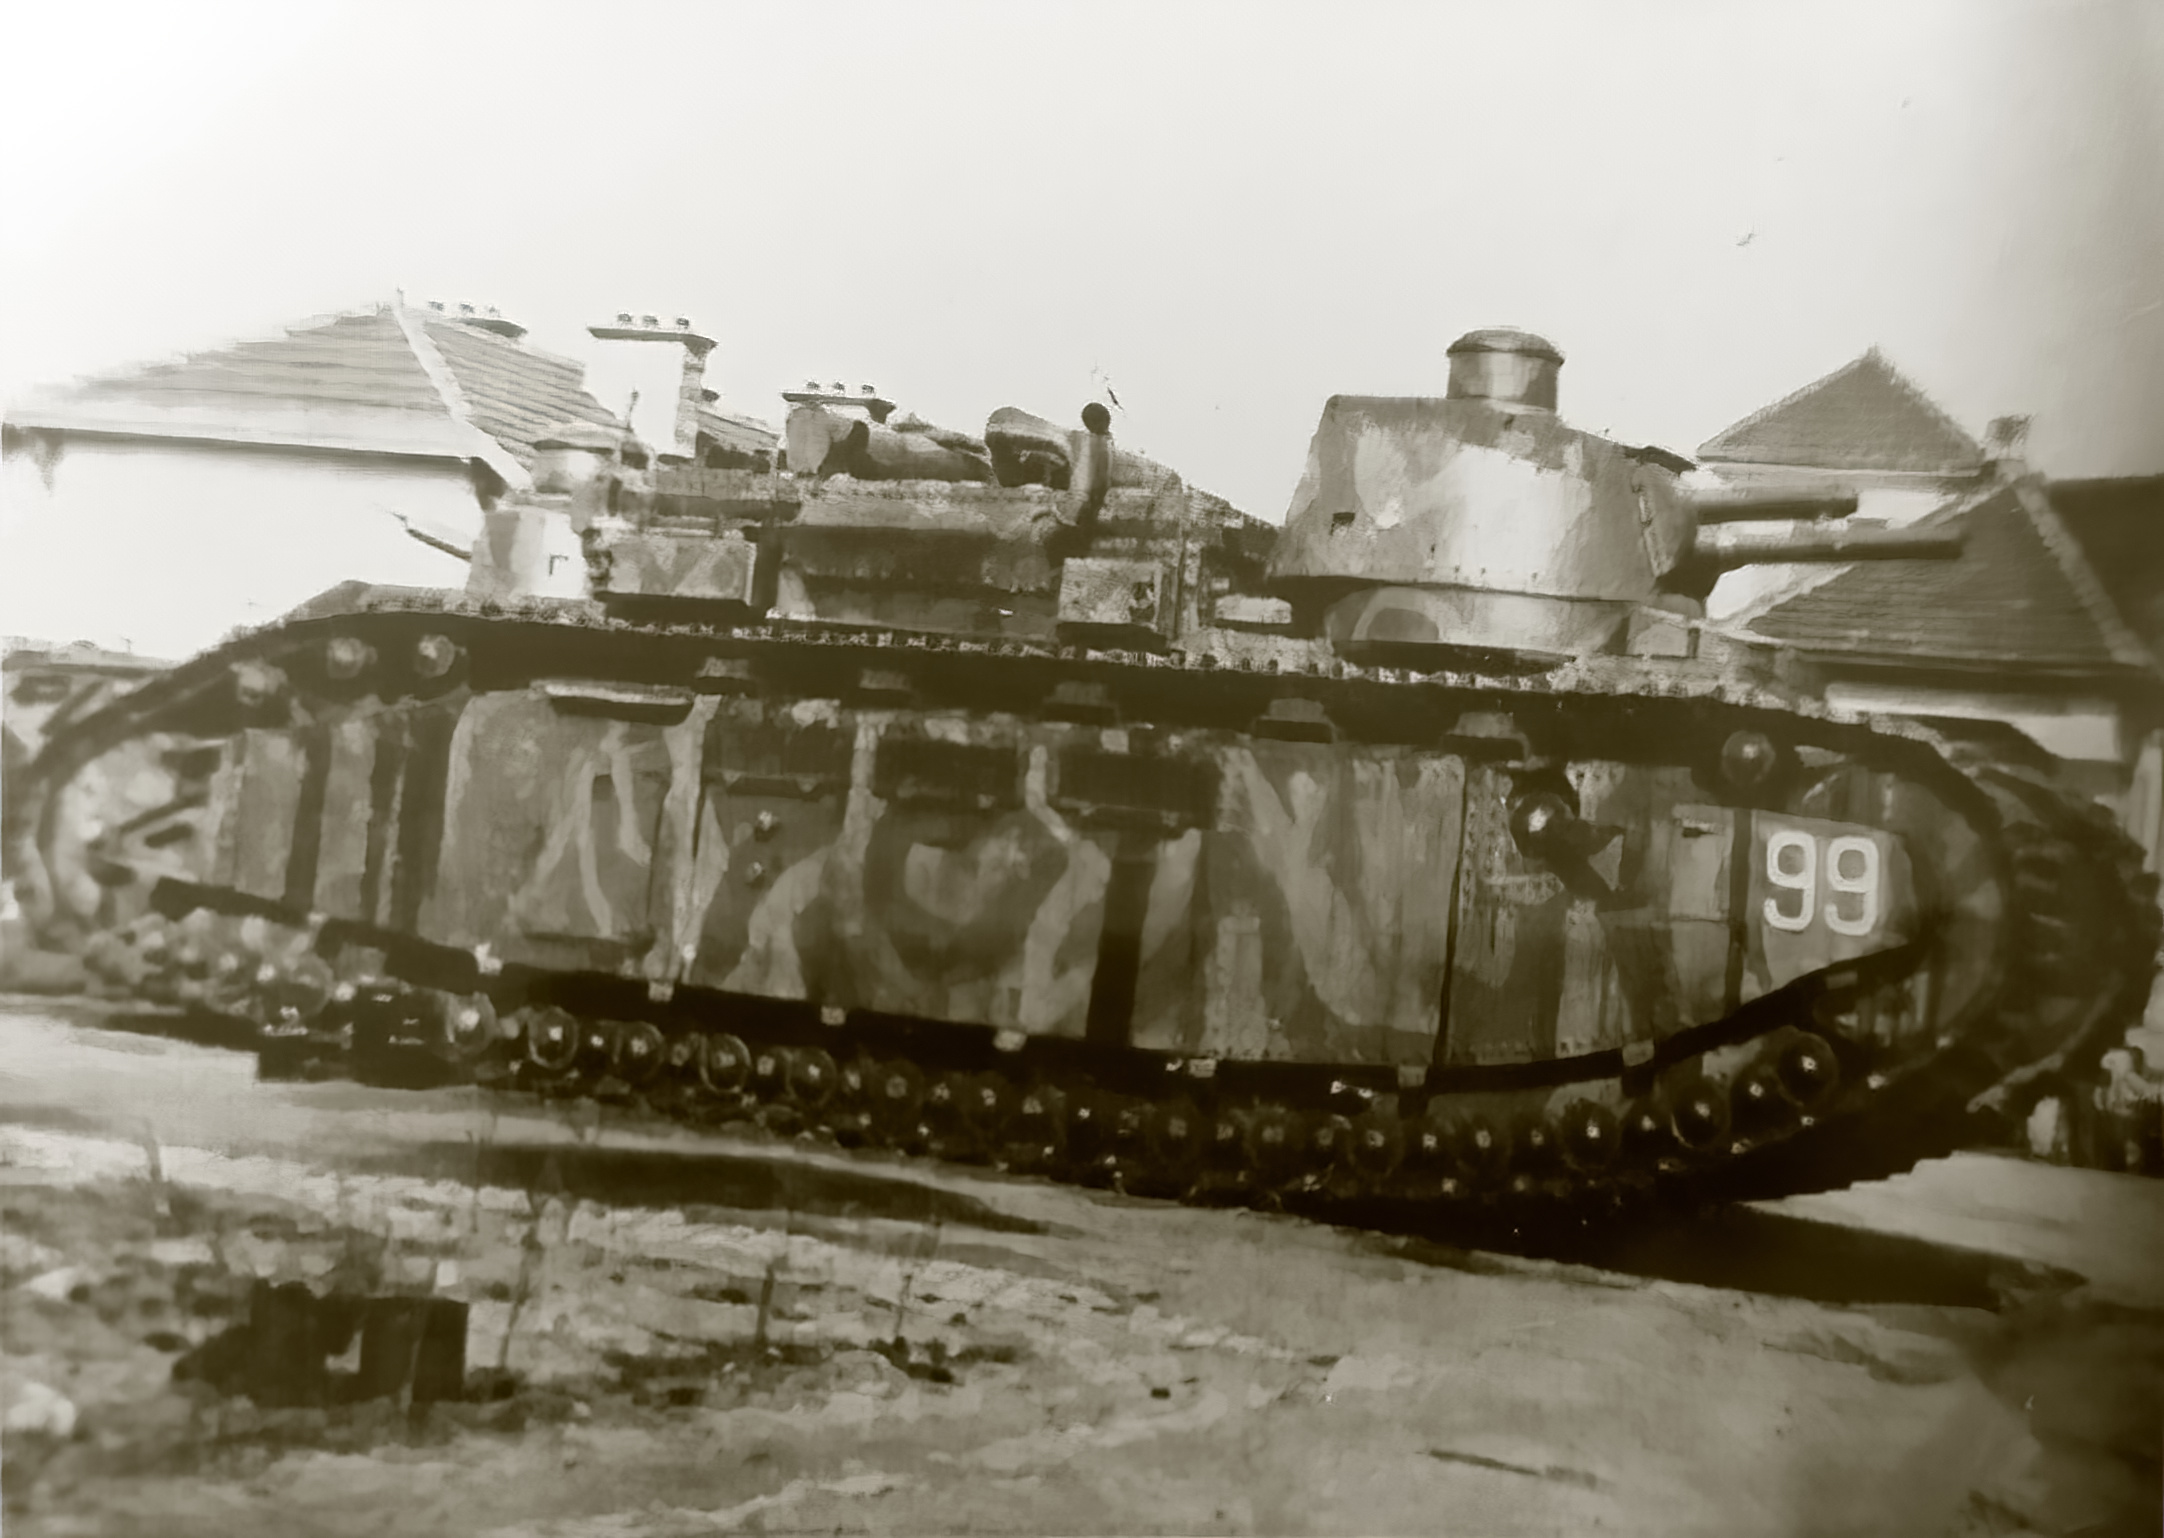 French Army Char 2C or FCM 2C heavy tank destroyed during battle of France 1940 ebay 02